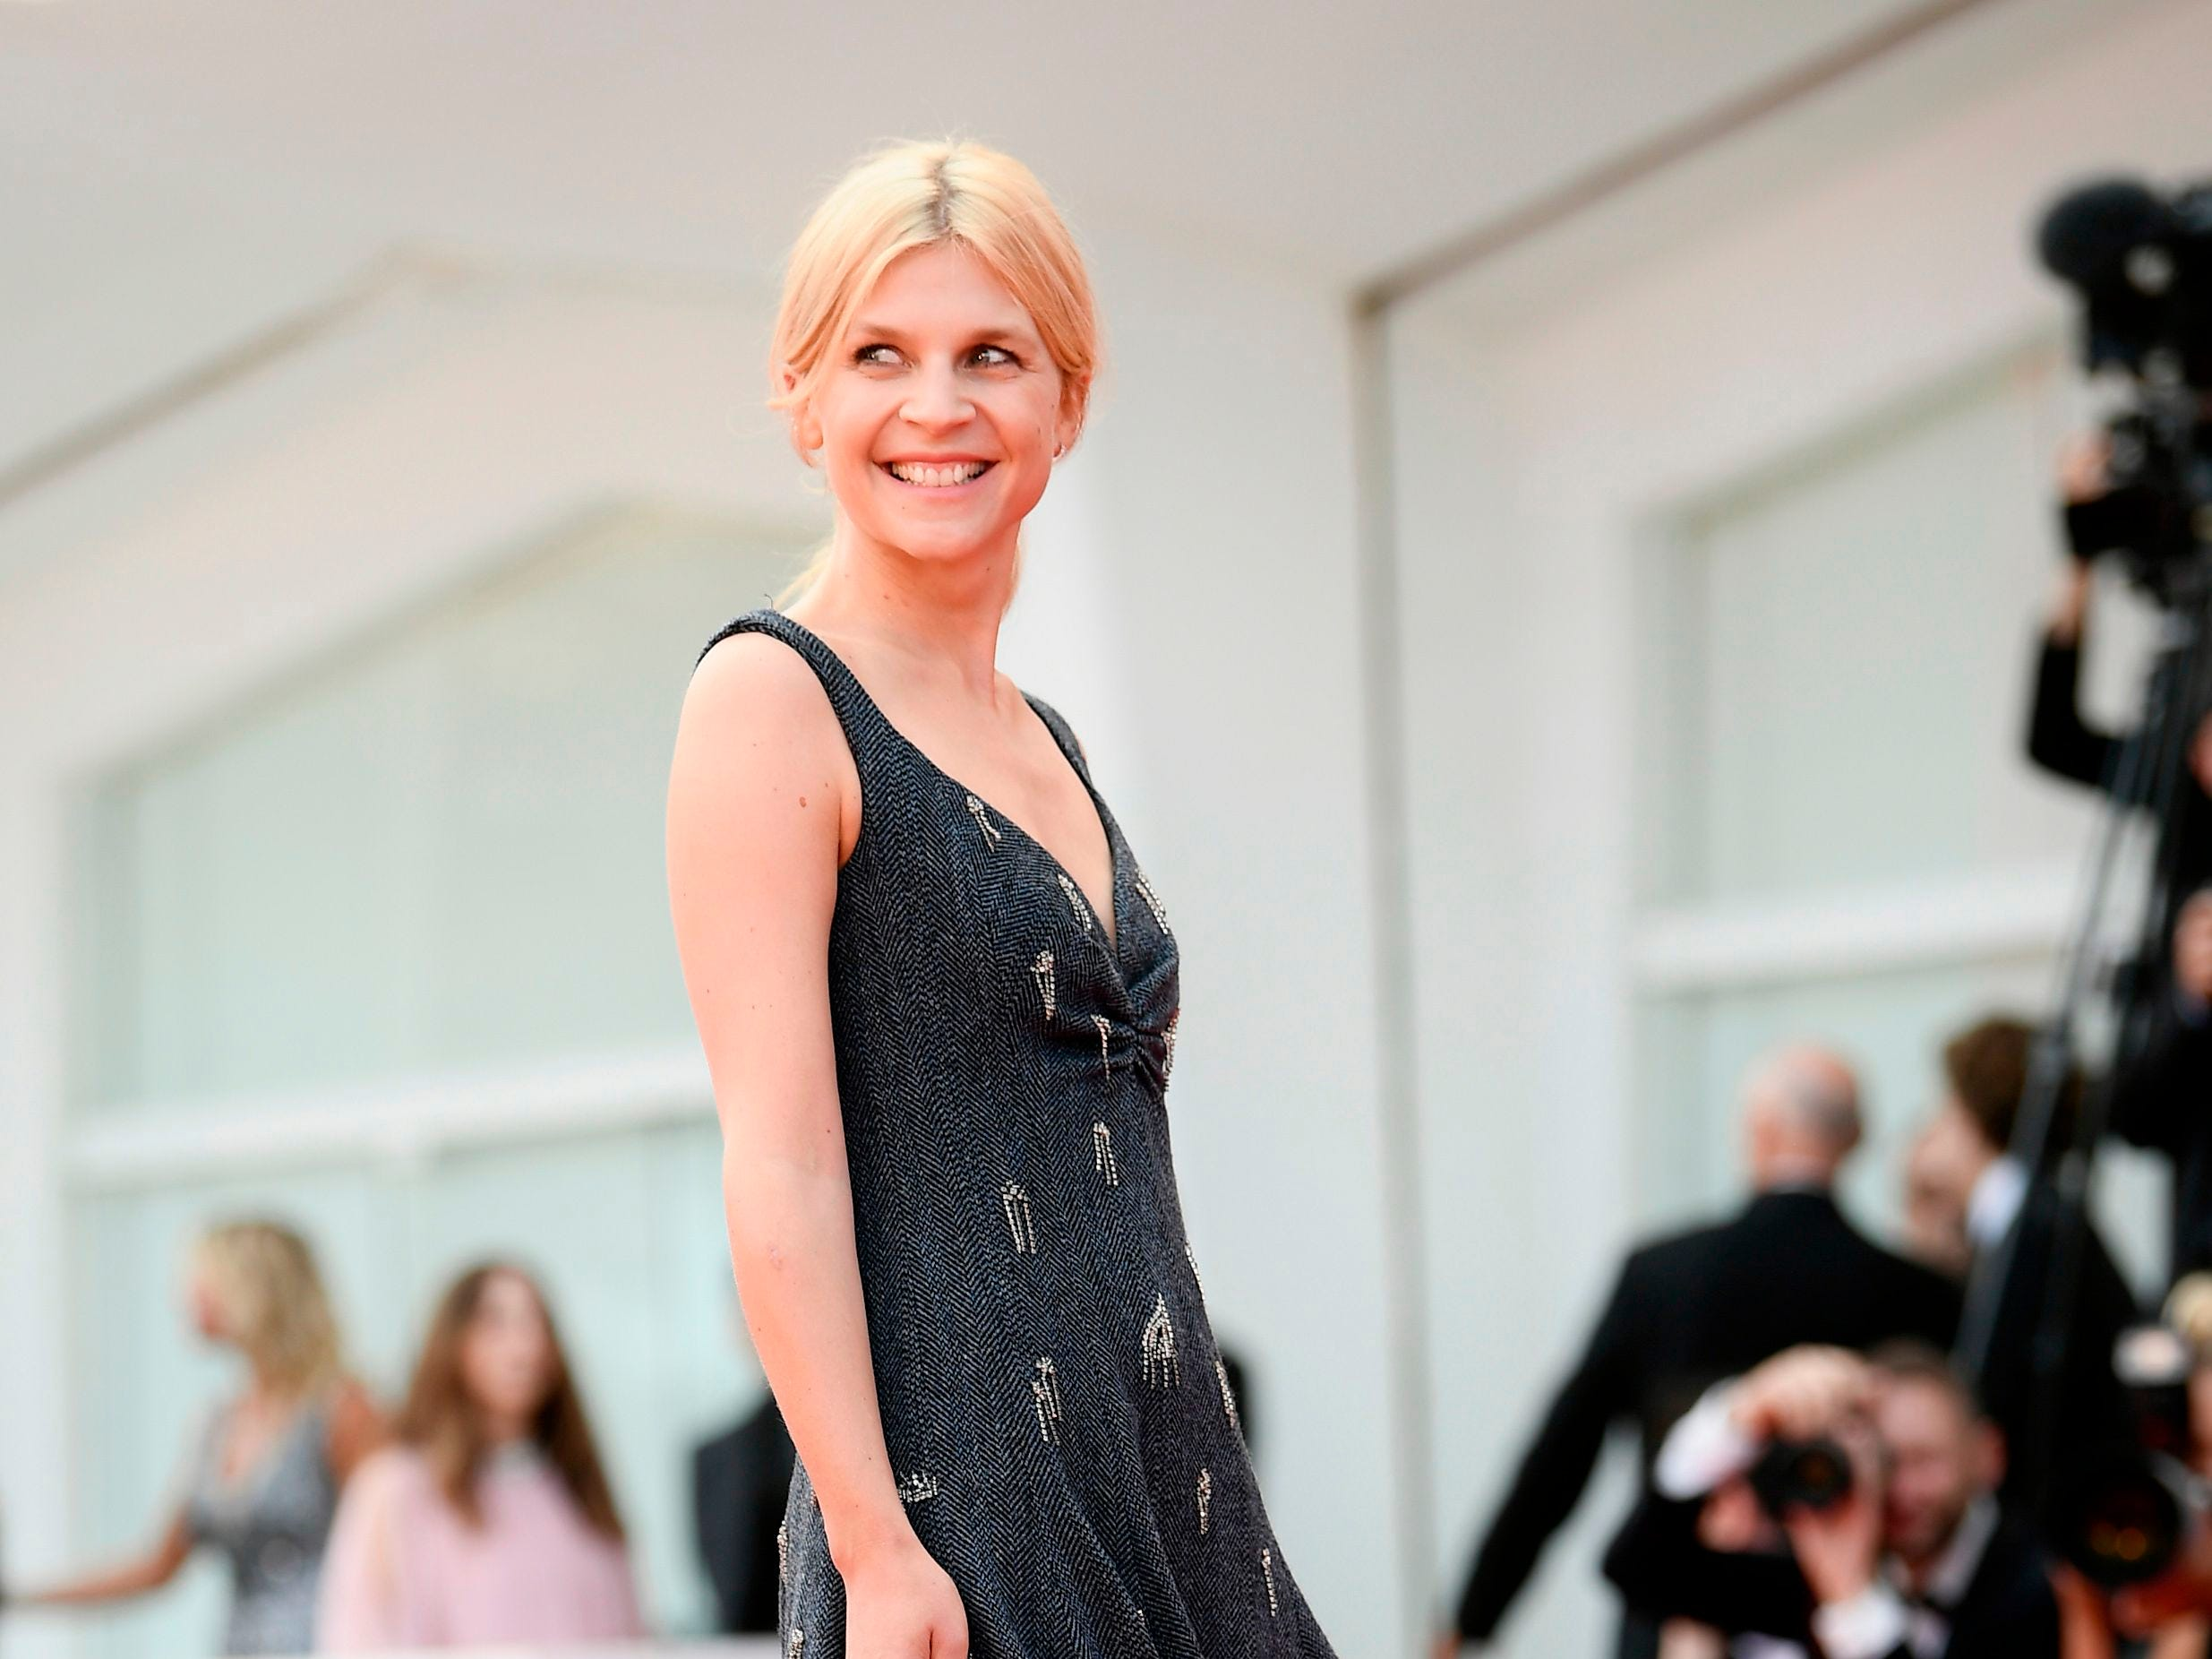 """Actress Clemence Poesy arrives for the opening ceremony and the premiere of the film """"First Man"""", presented in competition at the 75th Venice Film Festival on August 29, 2018 at Venice Lido. (Photo by Filippo MONTEFORTE / AFP)FILIPPO MONTEFORTE/AFP/Getty Images ORIG FILE ID: AFP_18P0L0"""